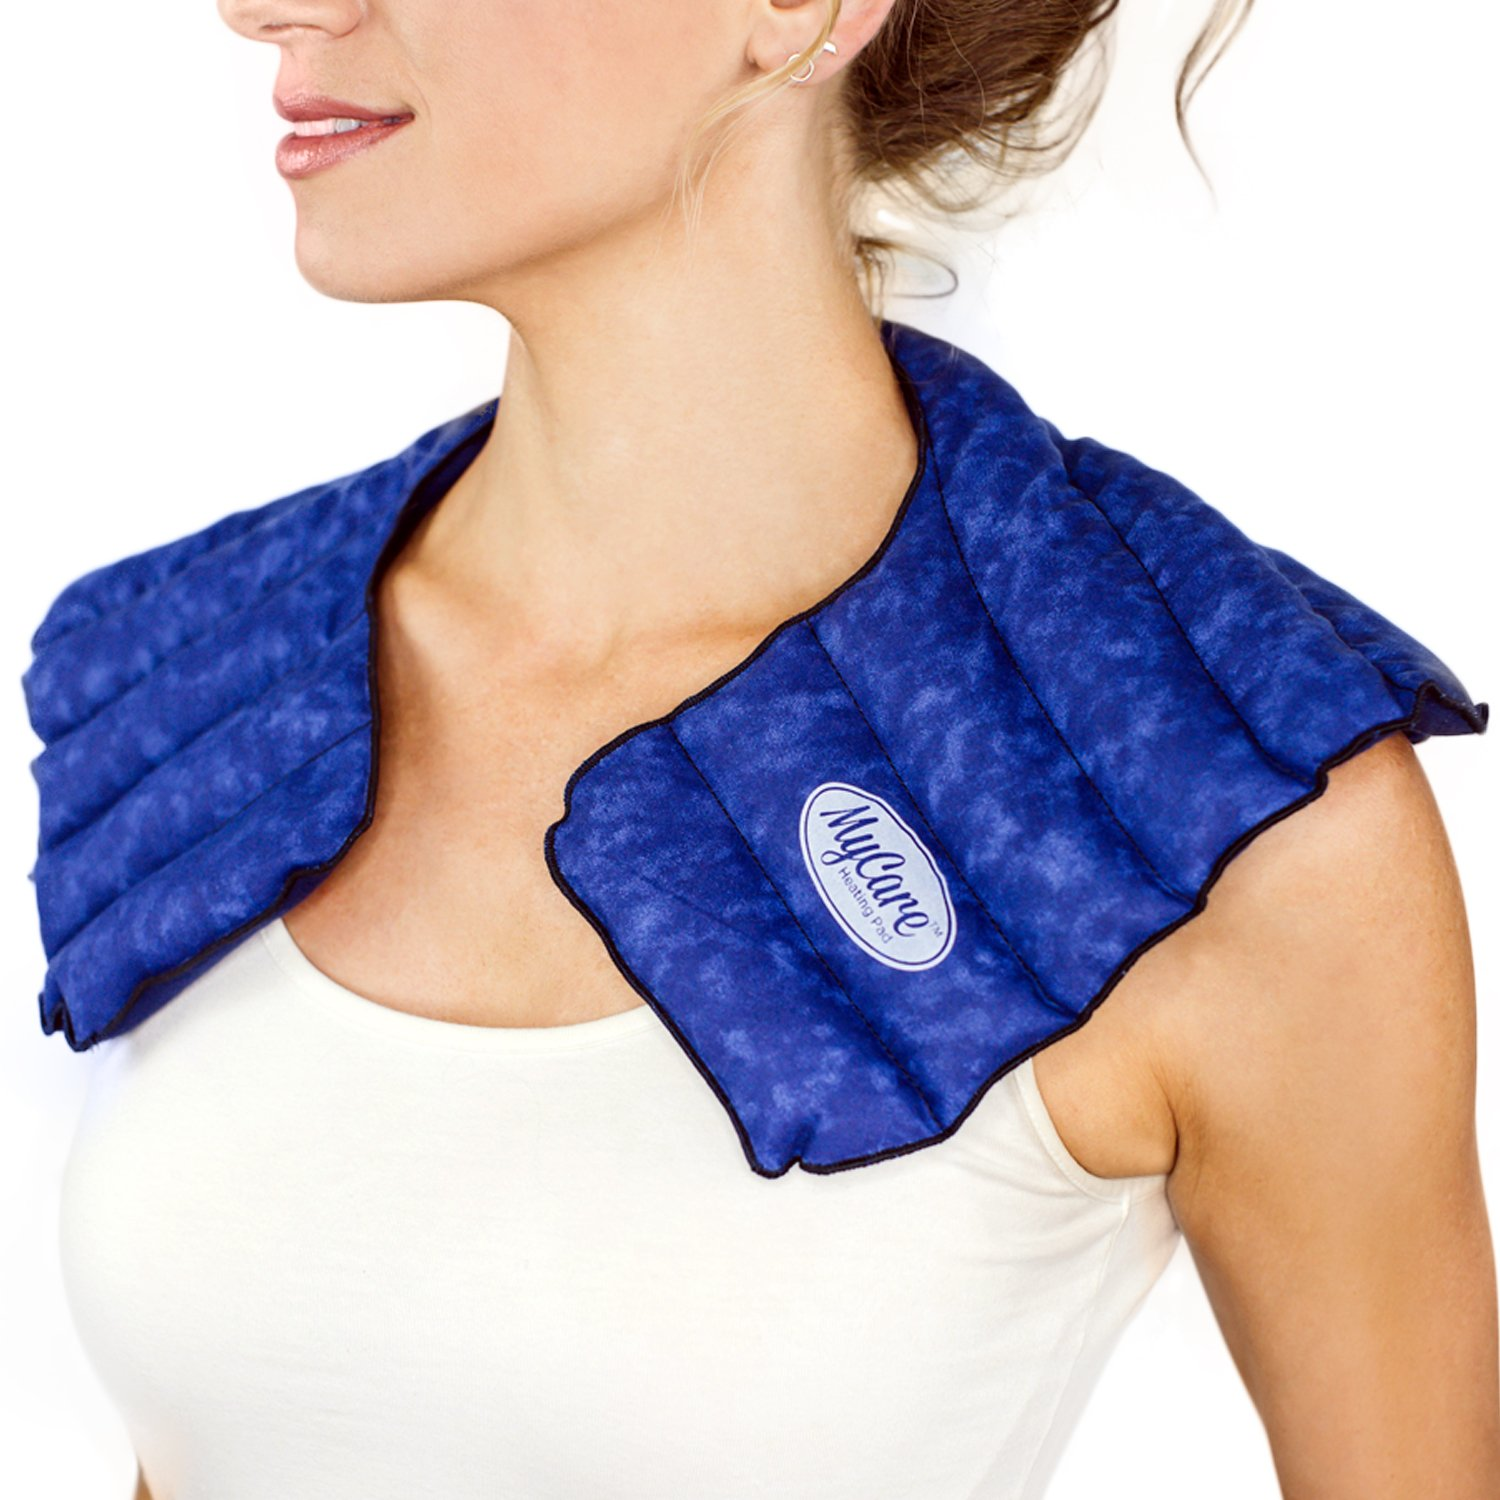 MyCare Shoulder Heating Pad – The Original Microwaveable Shoulder Wrap for Sore, Stiff Neck and Shoulder Muscle Relief - Natural, Comfortable and Safe Therapy That Works